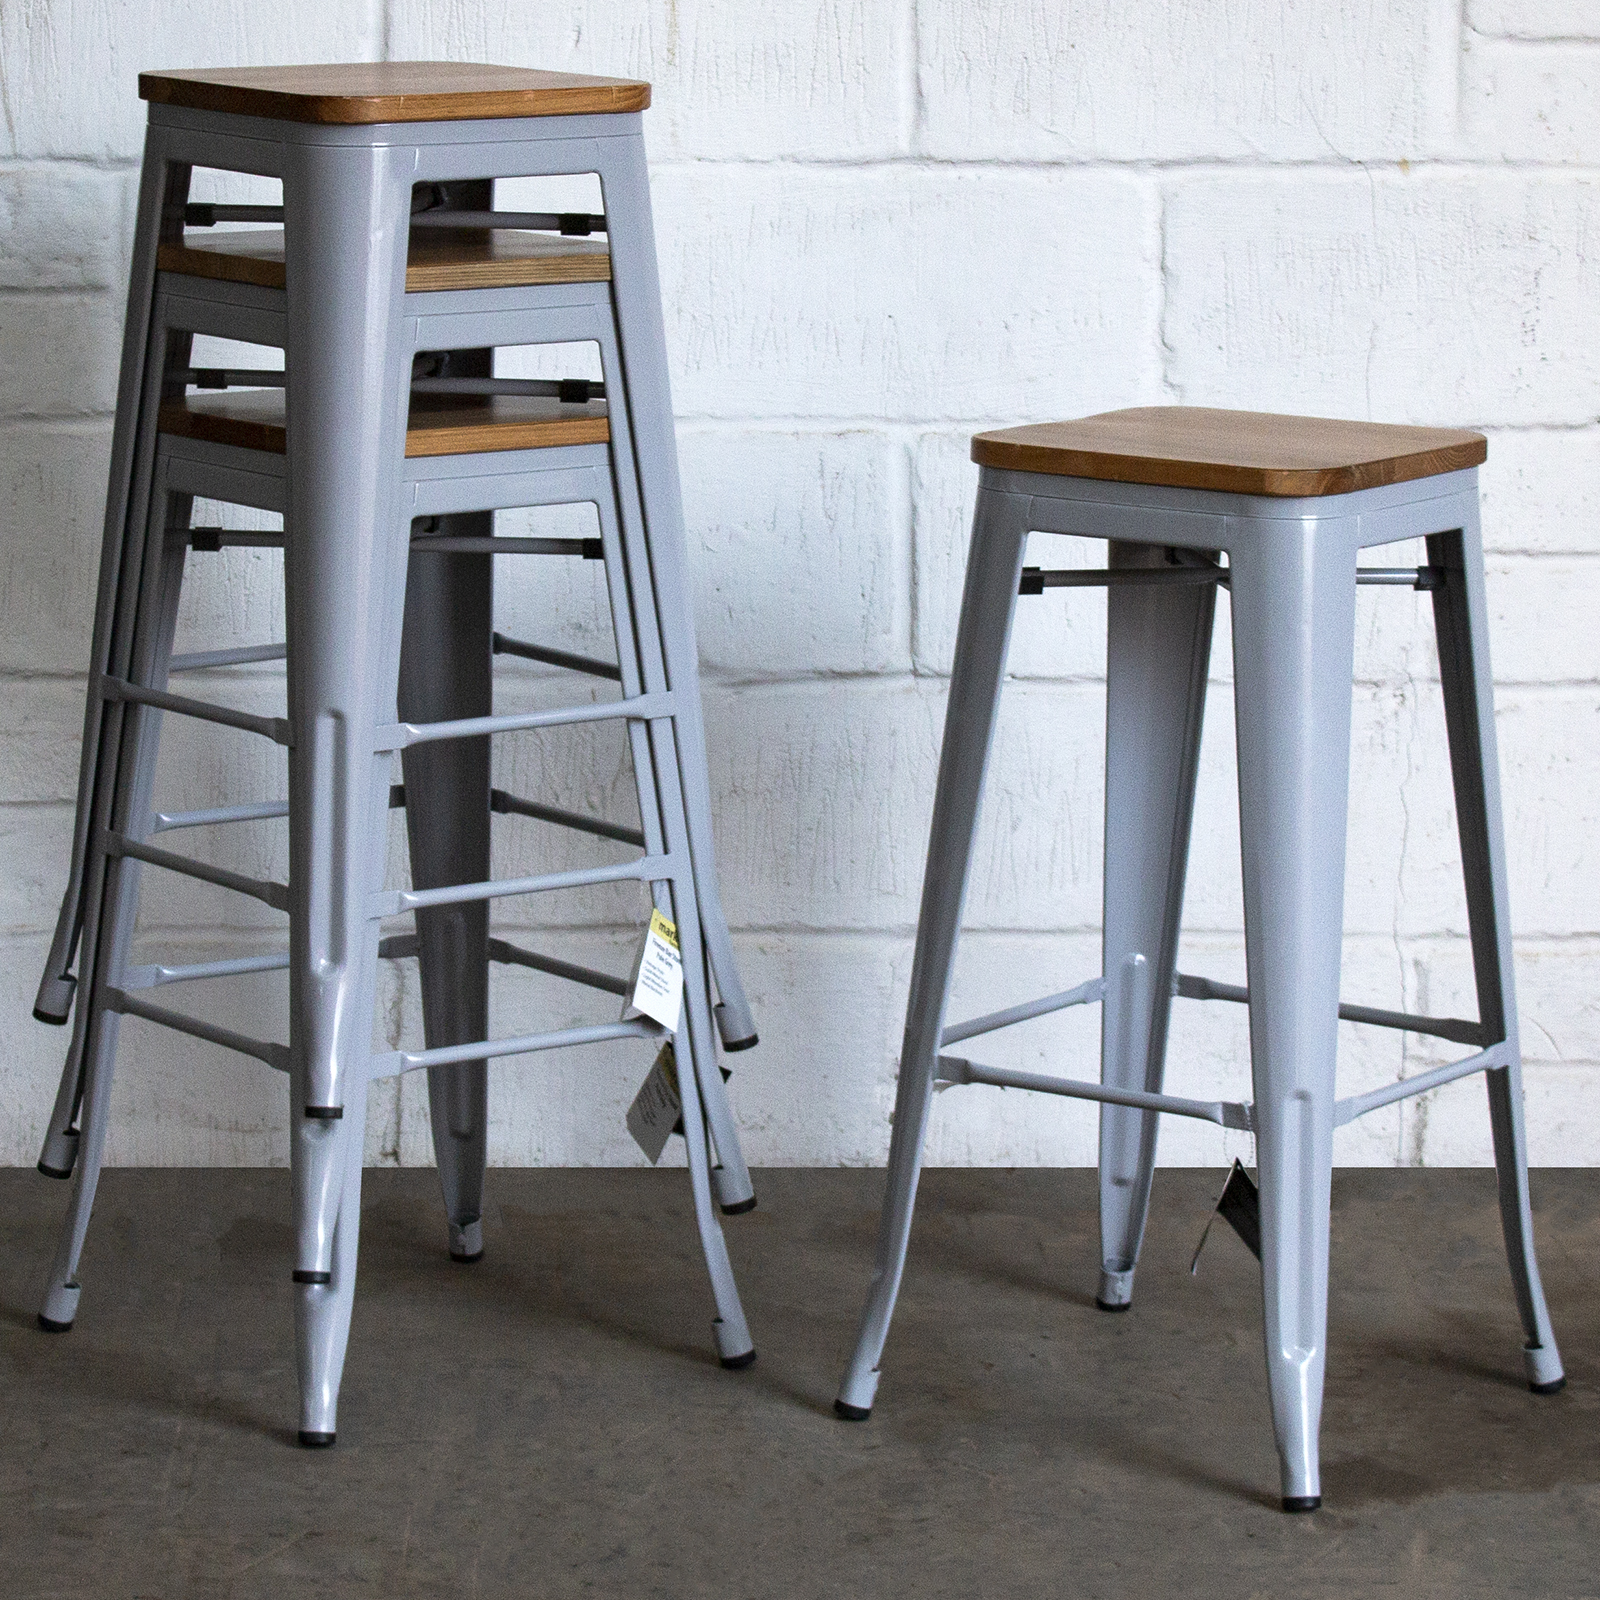 Fabulous Details About Set Of 4 Pale Grey Metal Industrial Bar Stool Breakfast Kitchen Bistro Tolix New Short Links Chair Design For Home Short Linksinfo